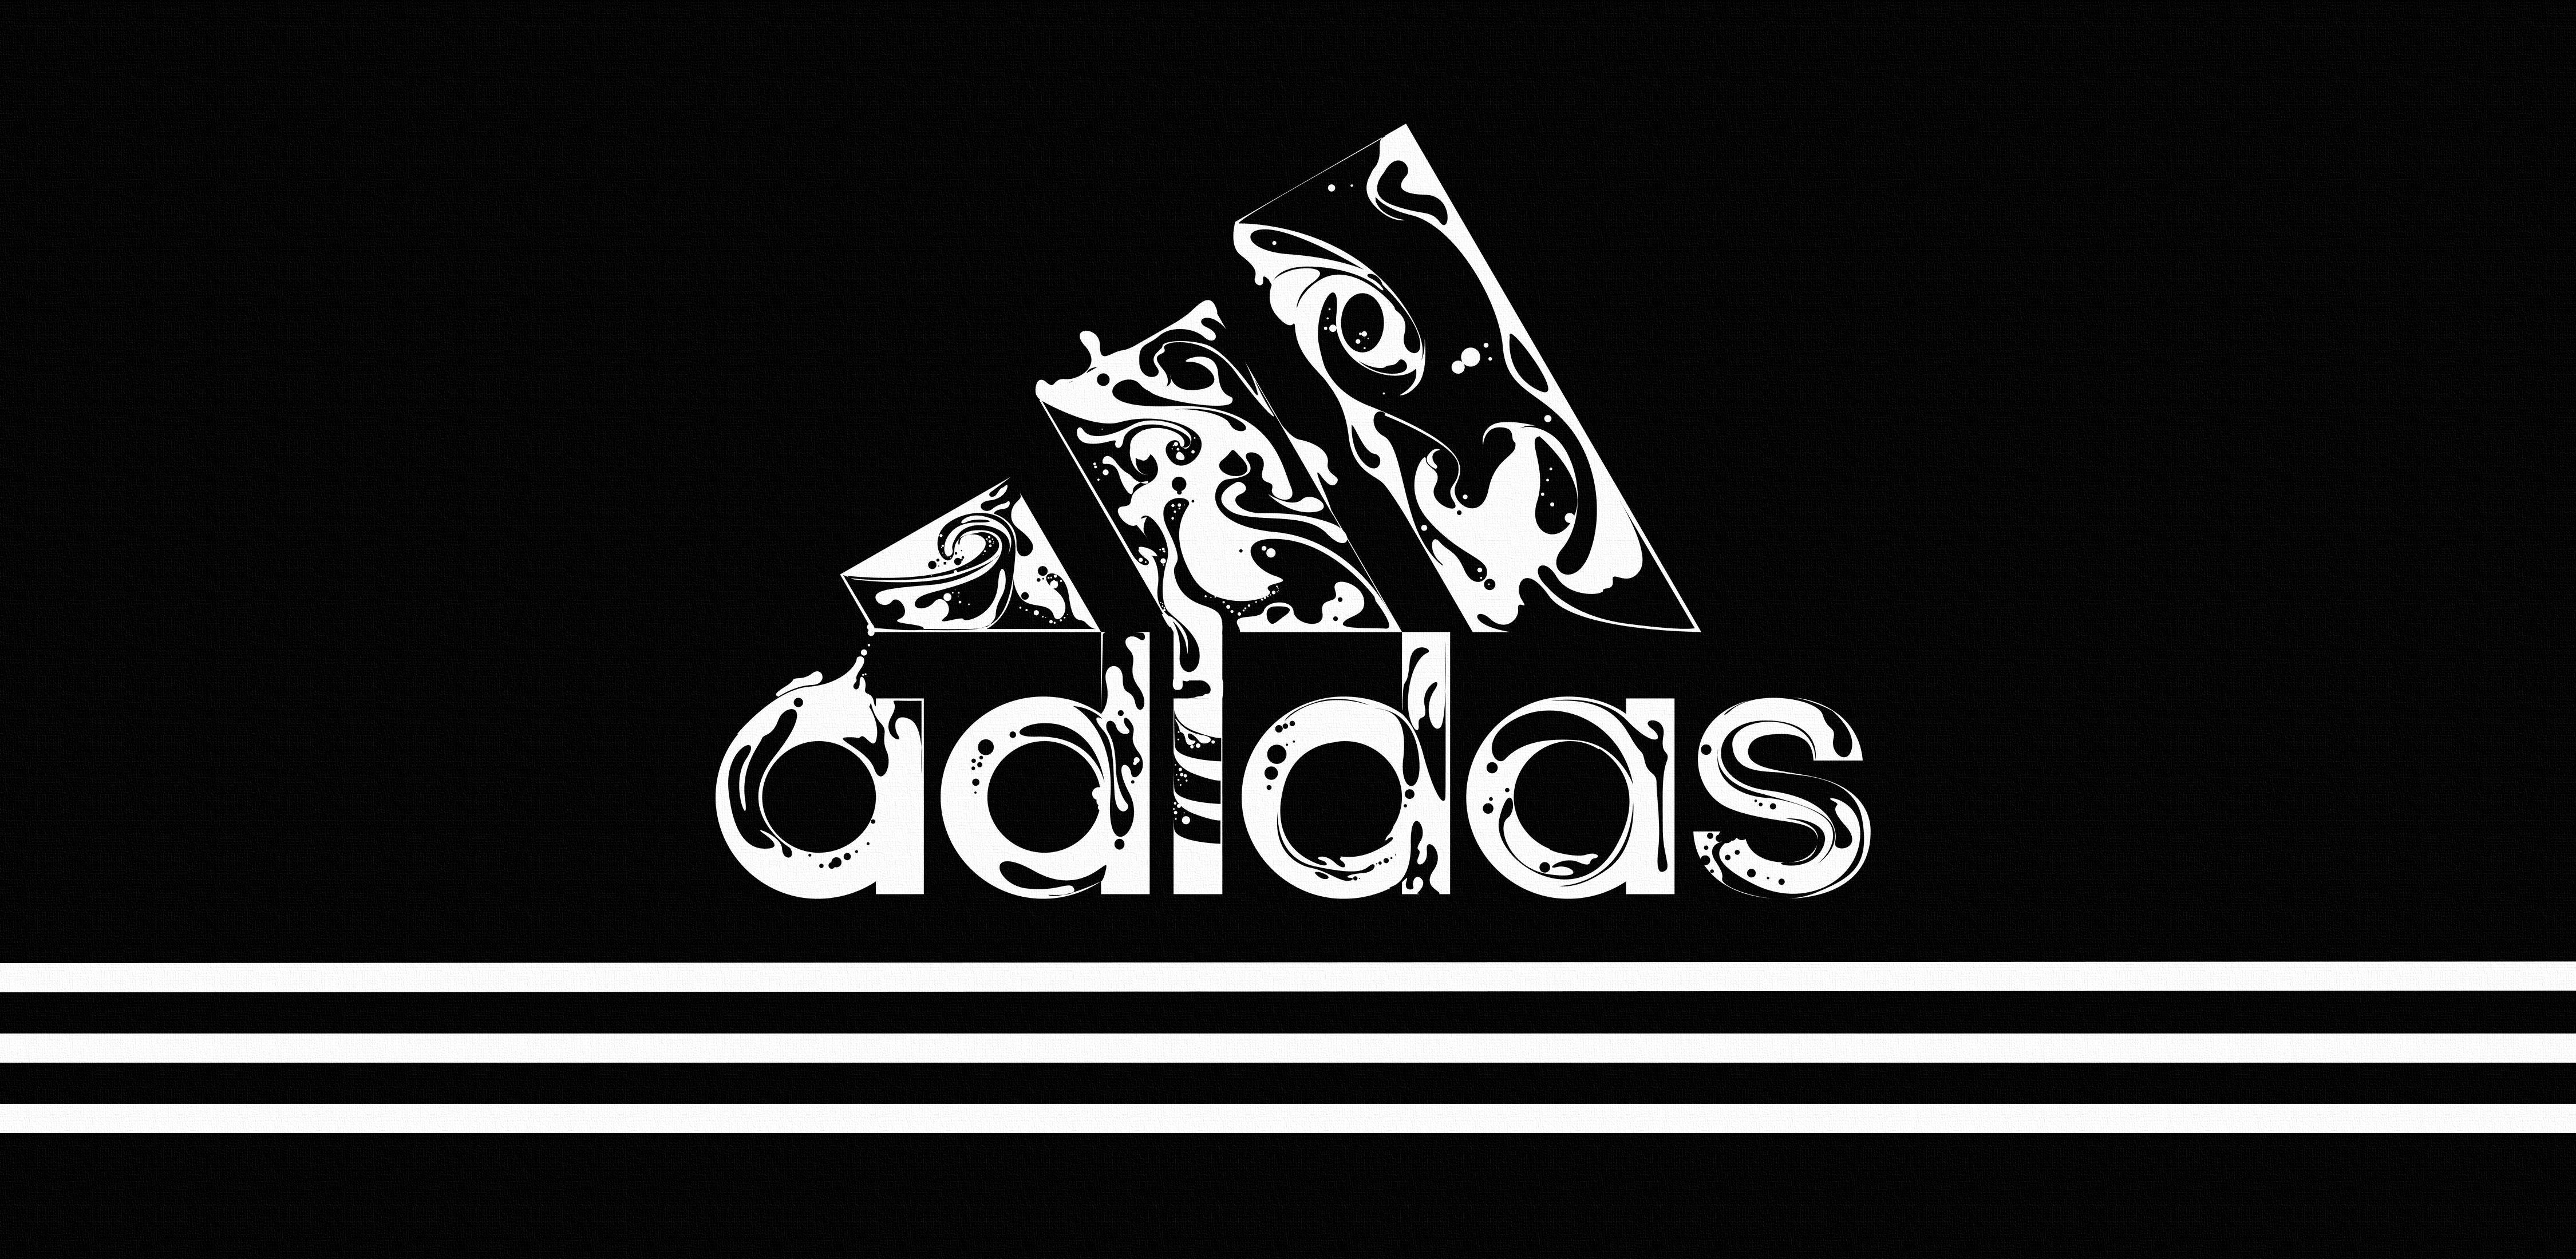 4500x2200 Adidas Logo Black And White HD Wallpaper - Ongur